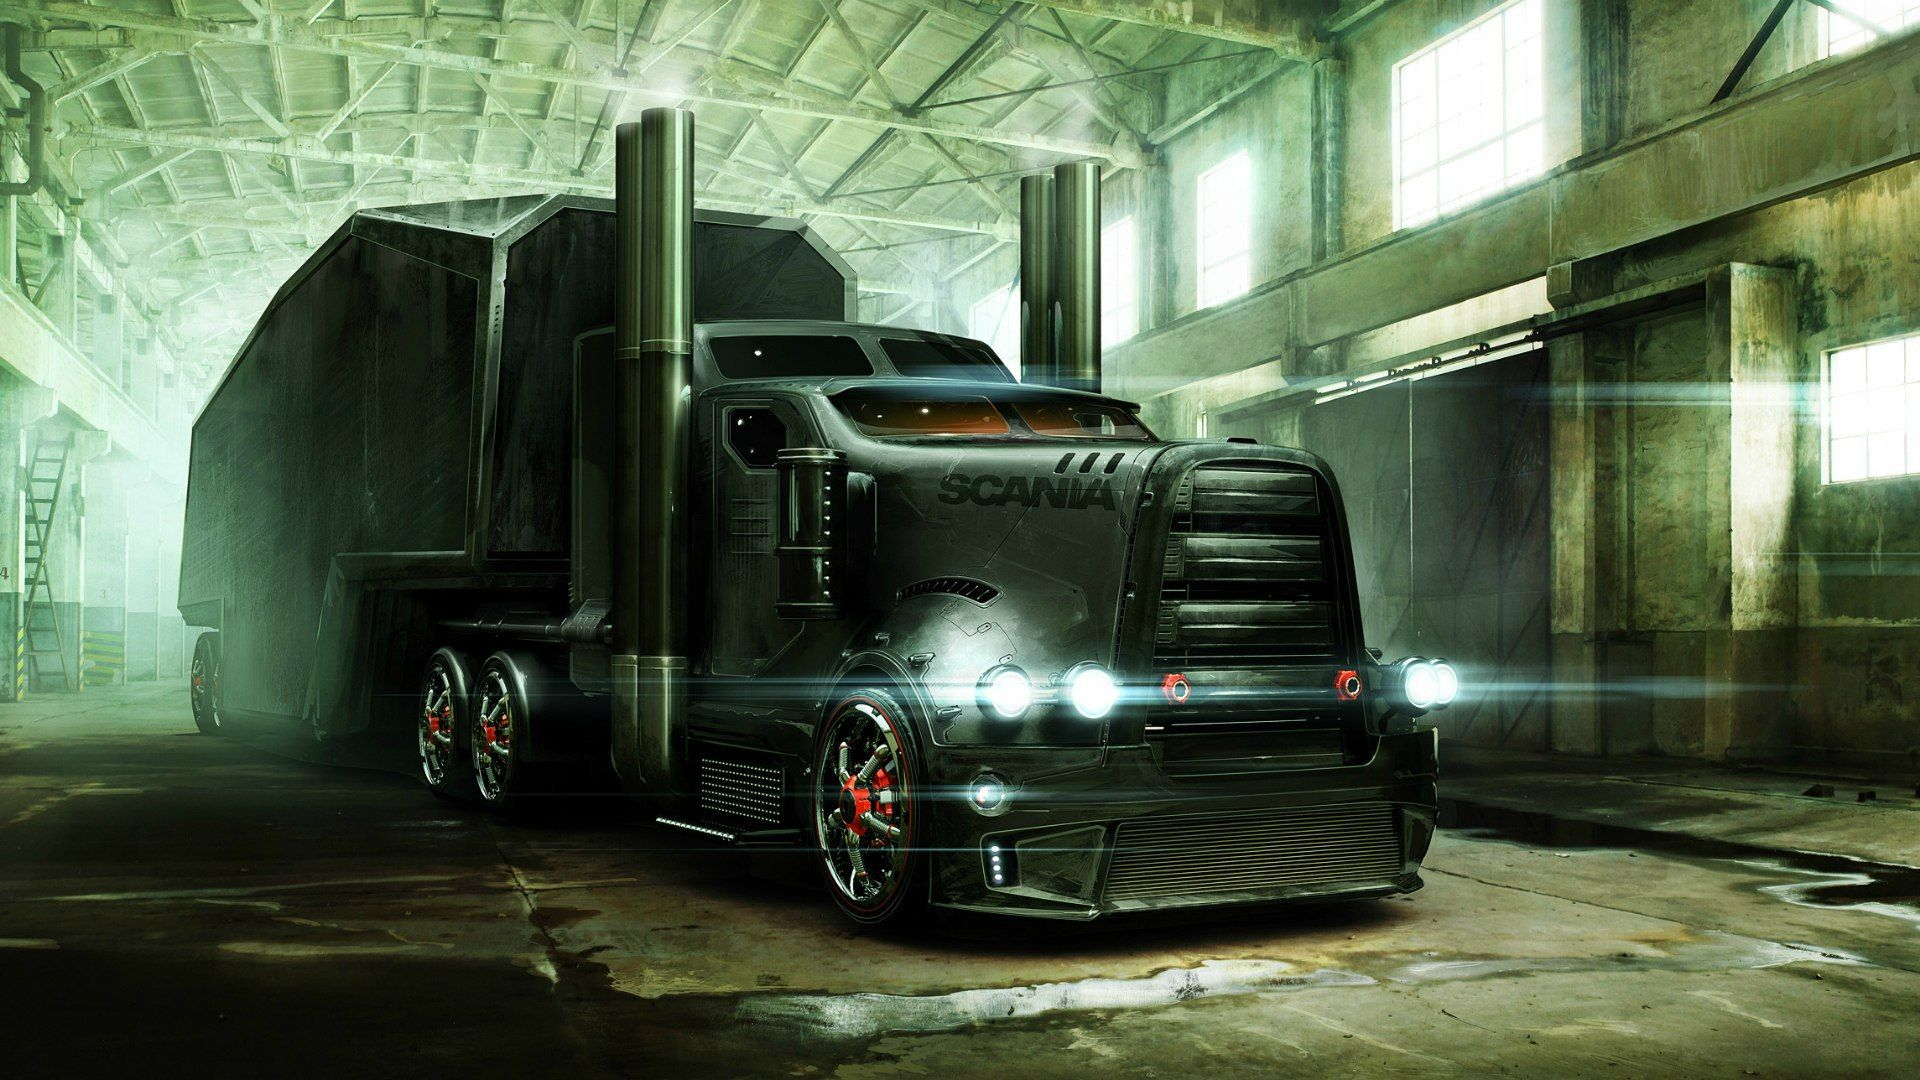 Cool Semi Truck Wallpapers